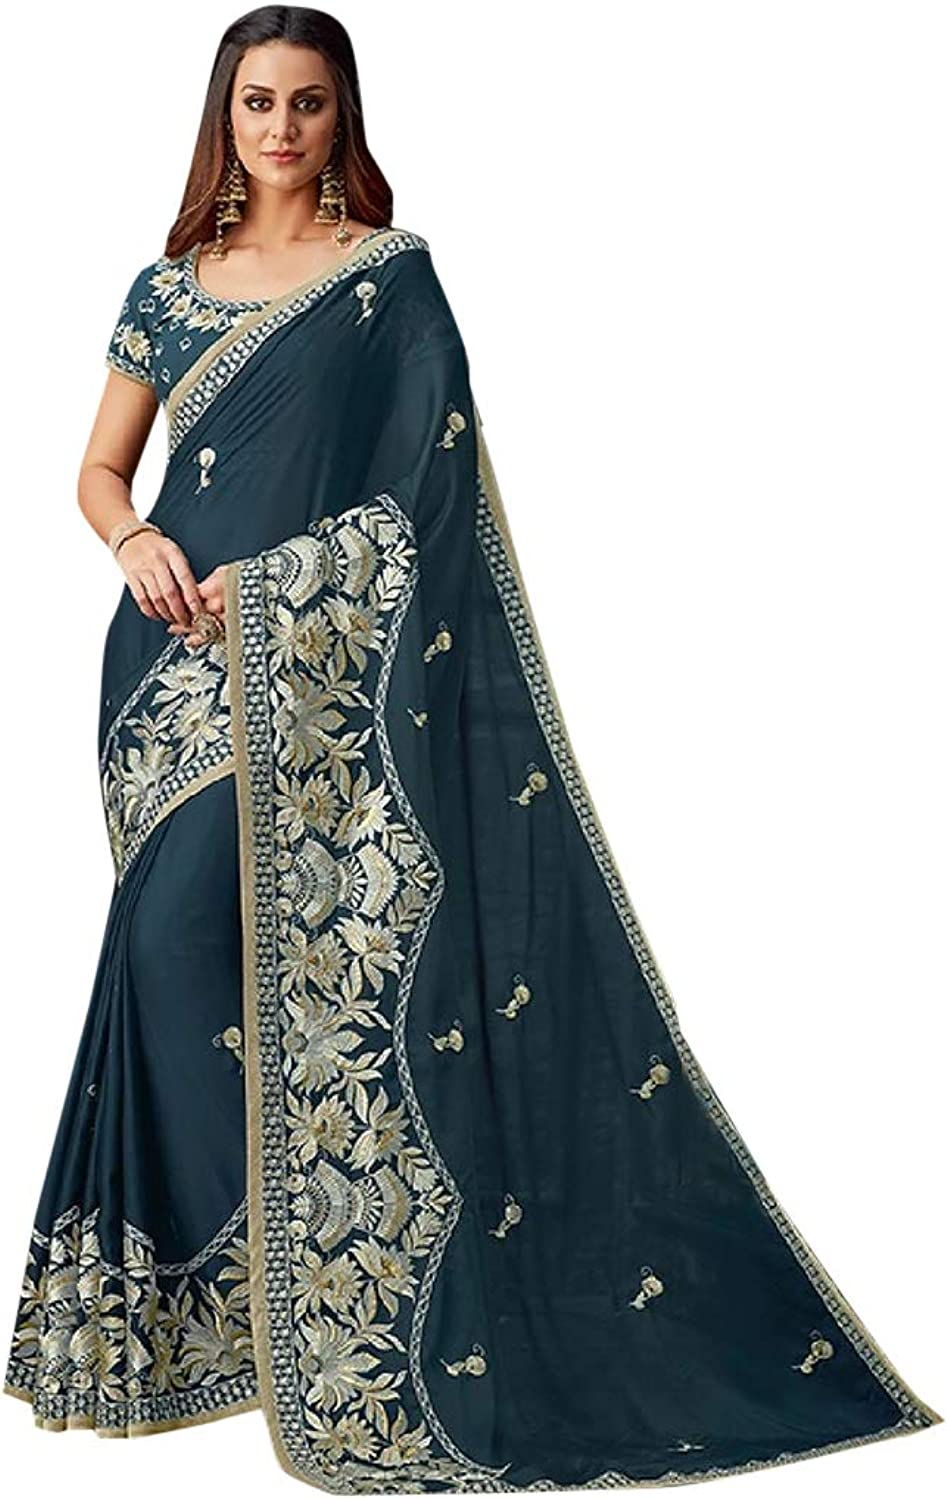 Indian Ethnic Party Wear Heavy Border Saree With Blouse Designer Collection 7357